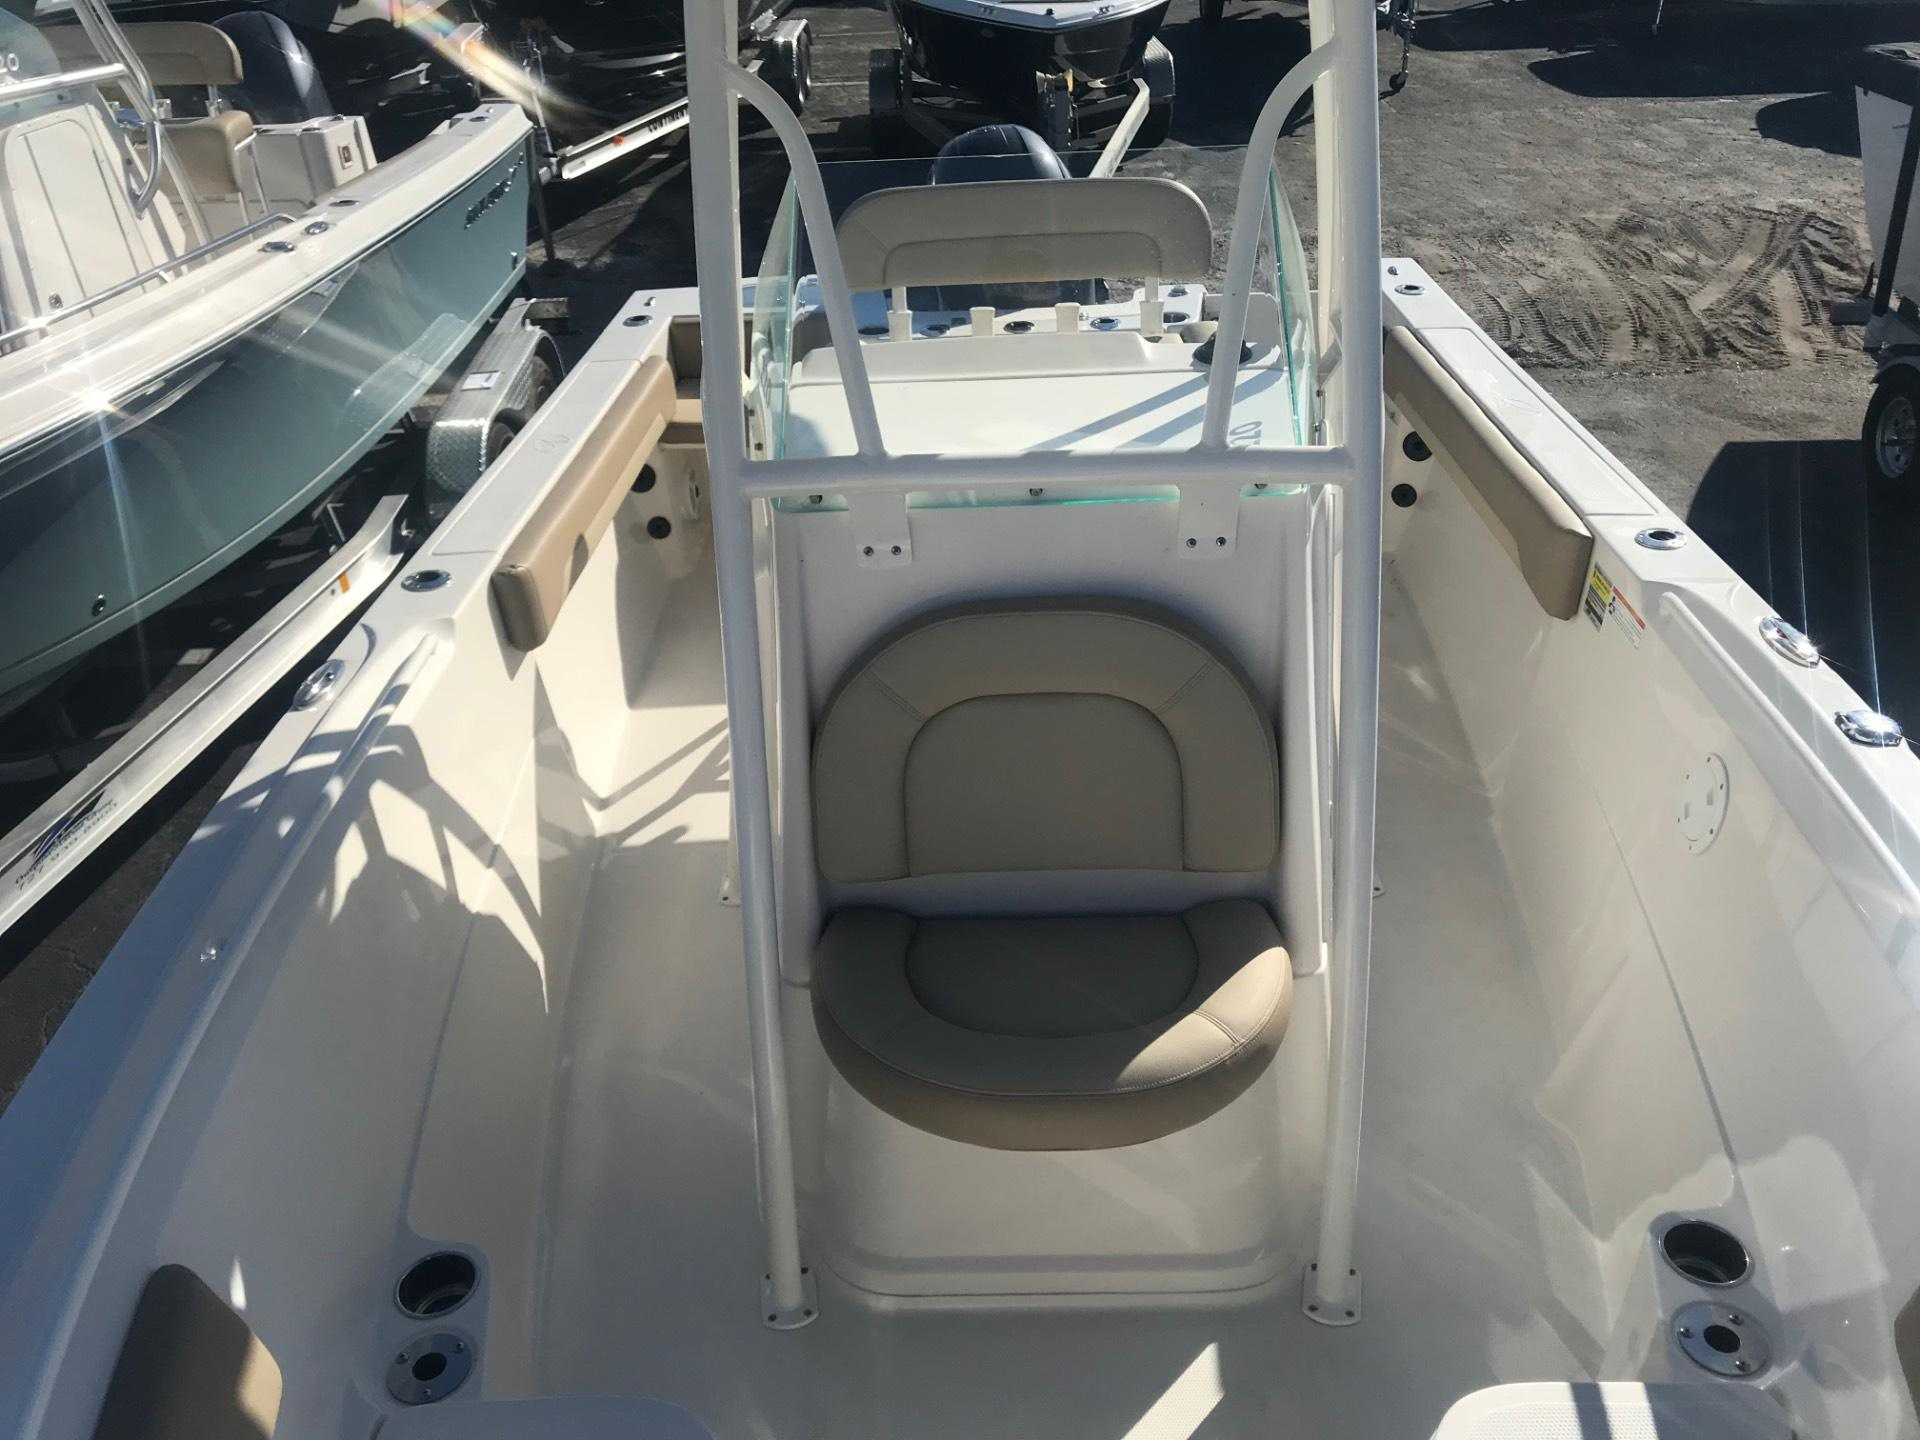 2018 Sailfish 220 CC in Holiday, Florida